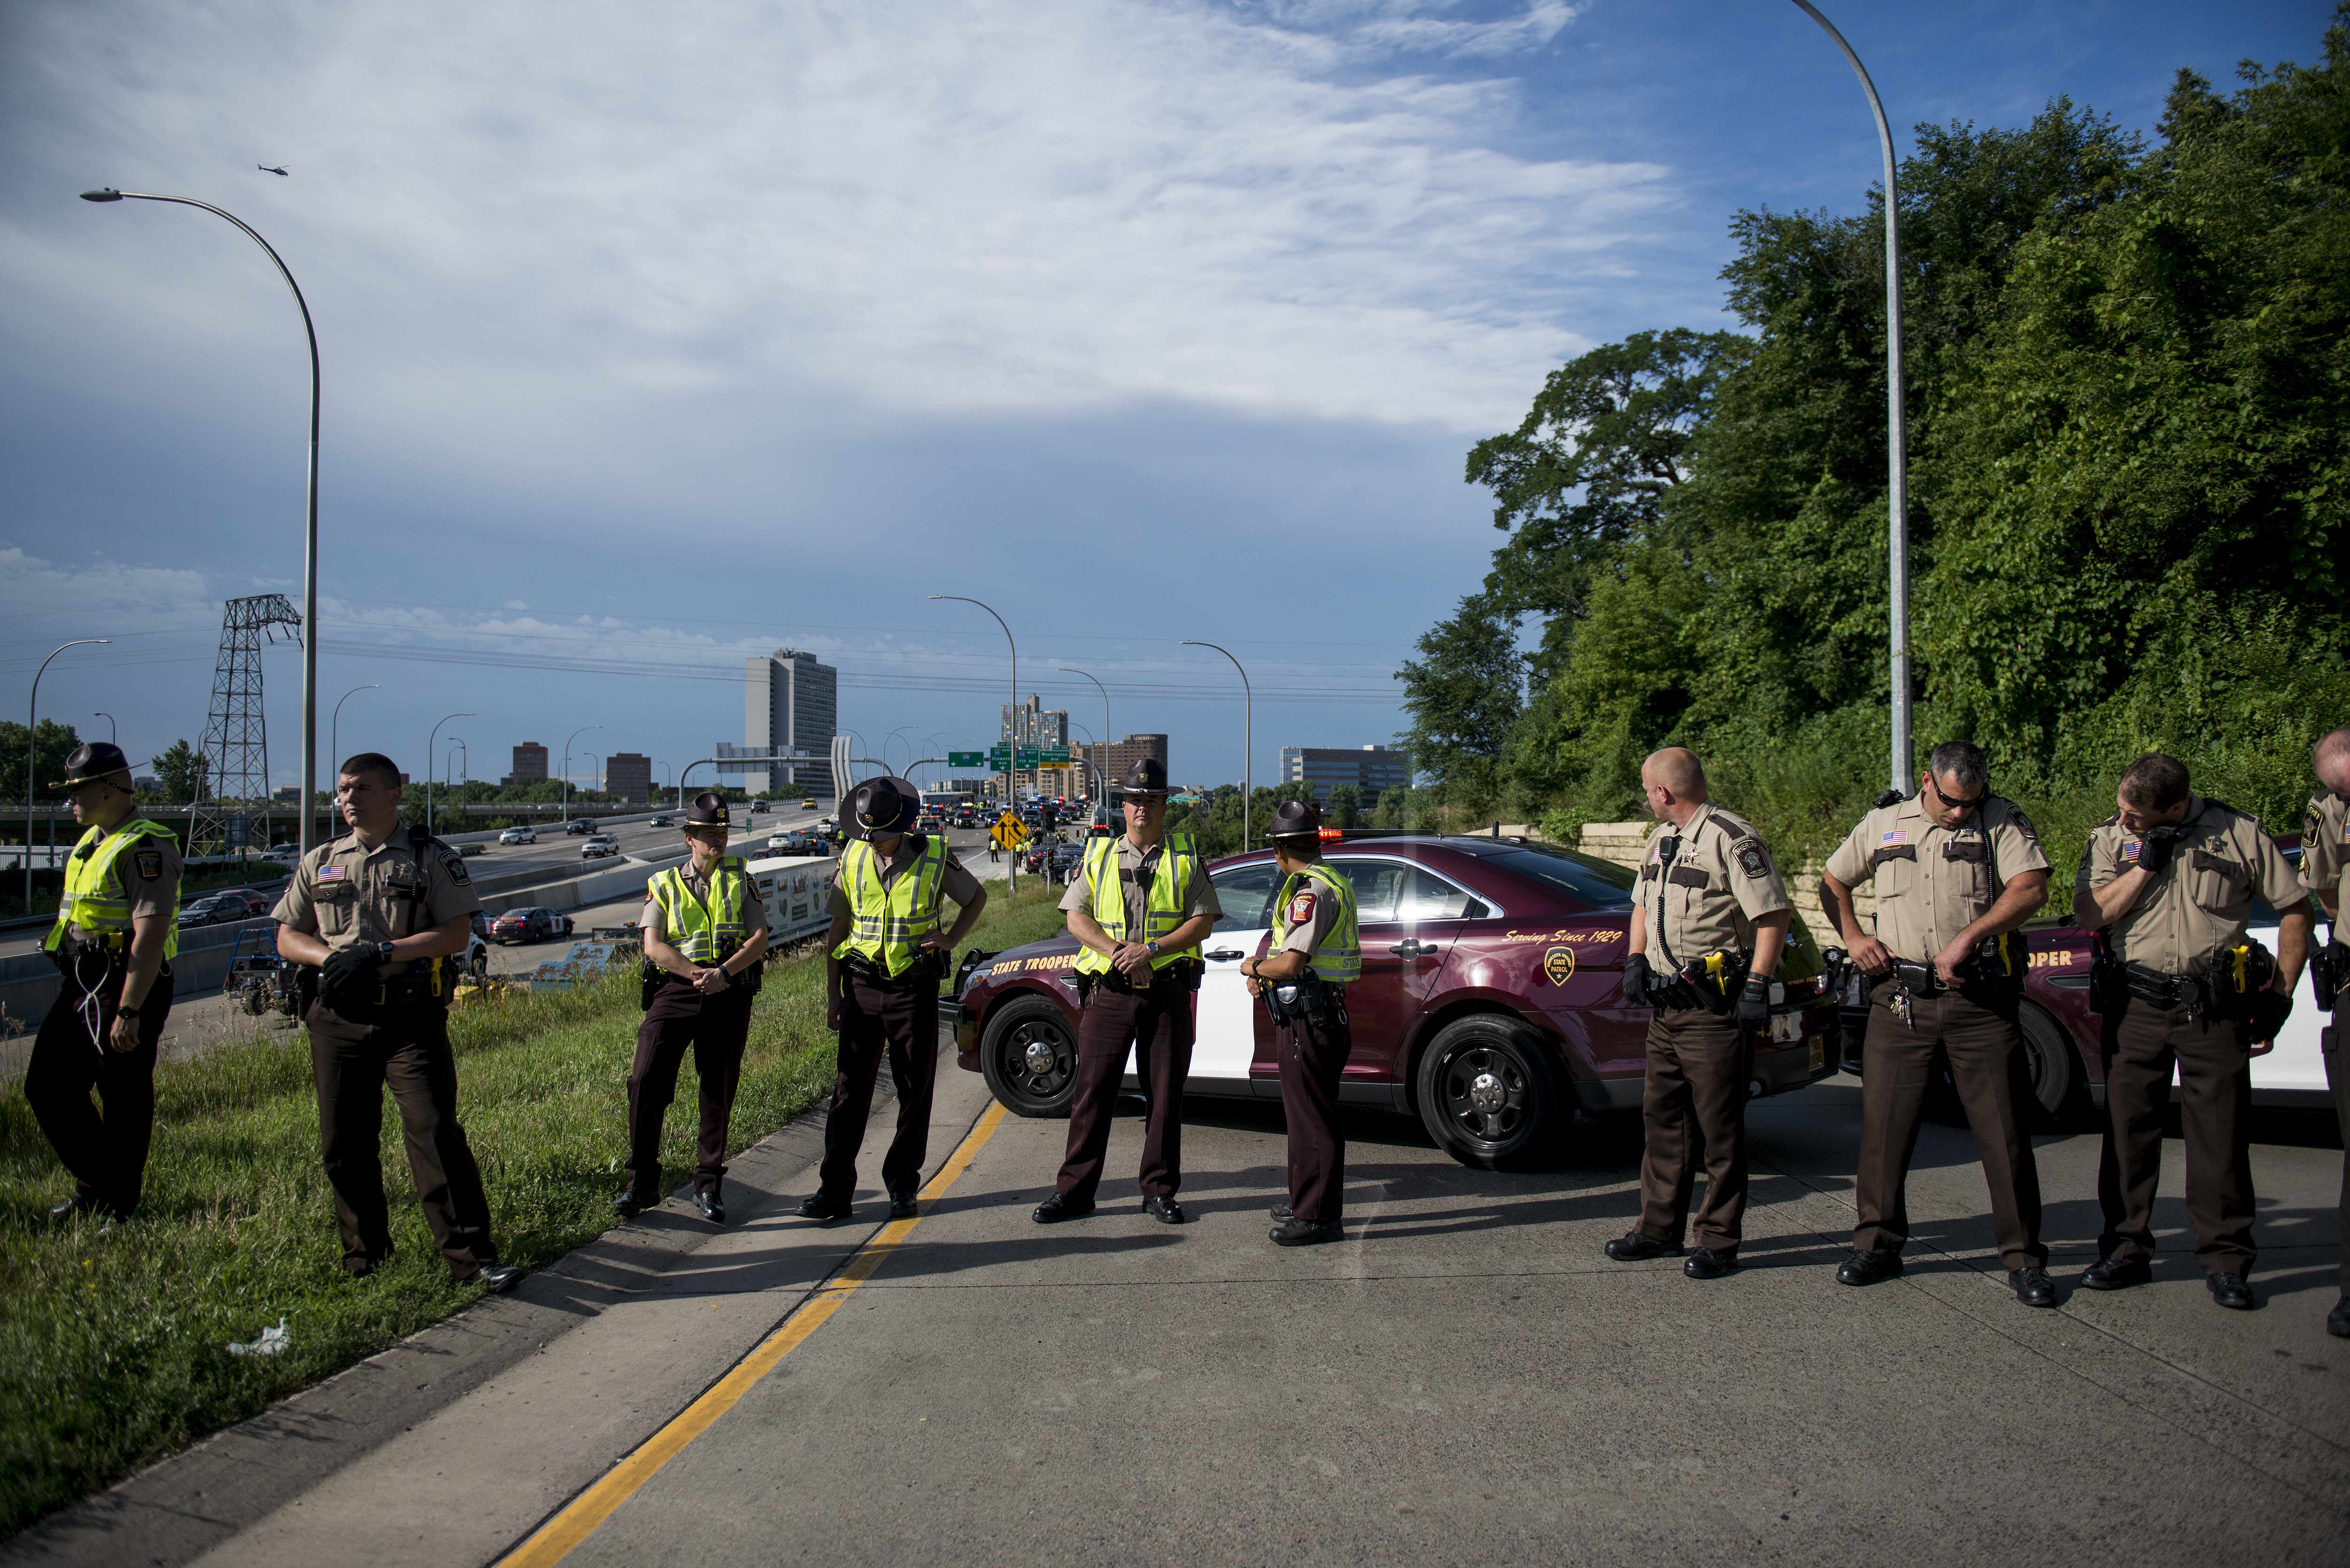 Police officers block traffic from entering highway 35W on July 13, 2016 in Minneapolis, Minnesota. (Photo by Stephen Maturen/Getty Images)